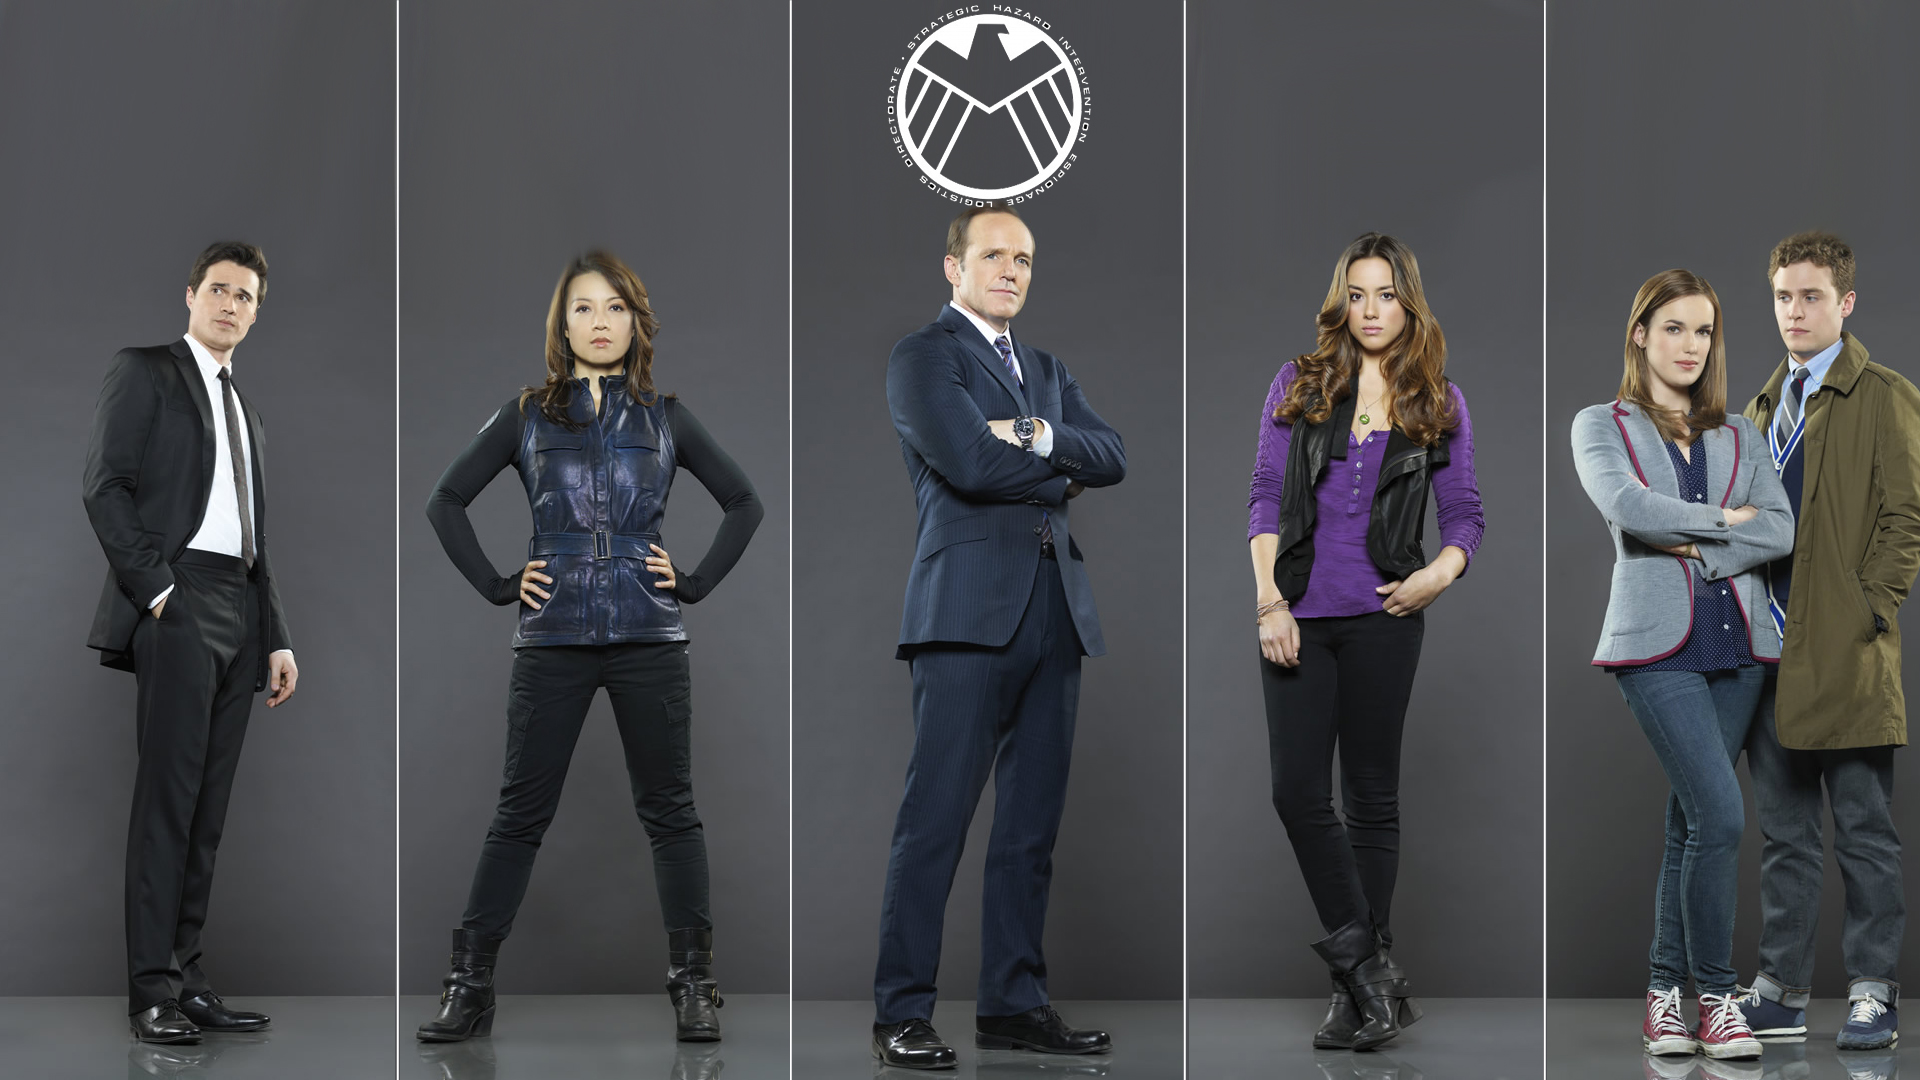 Agents of SHIELD Cast   Wallpaper High Definition High Quality 1920x1080